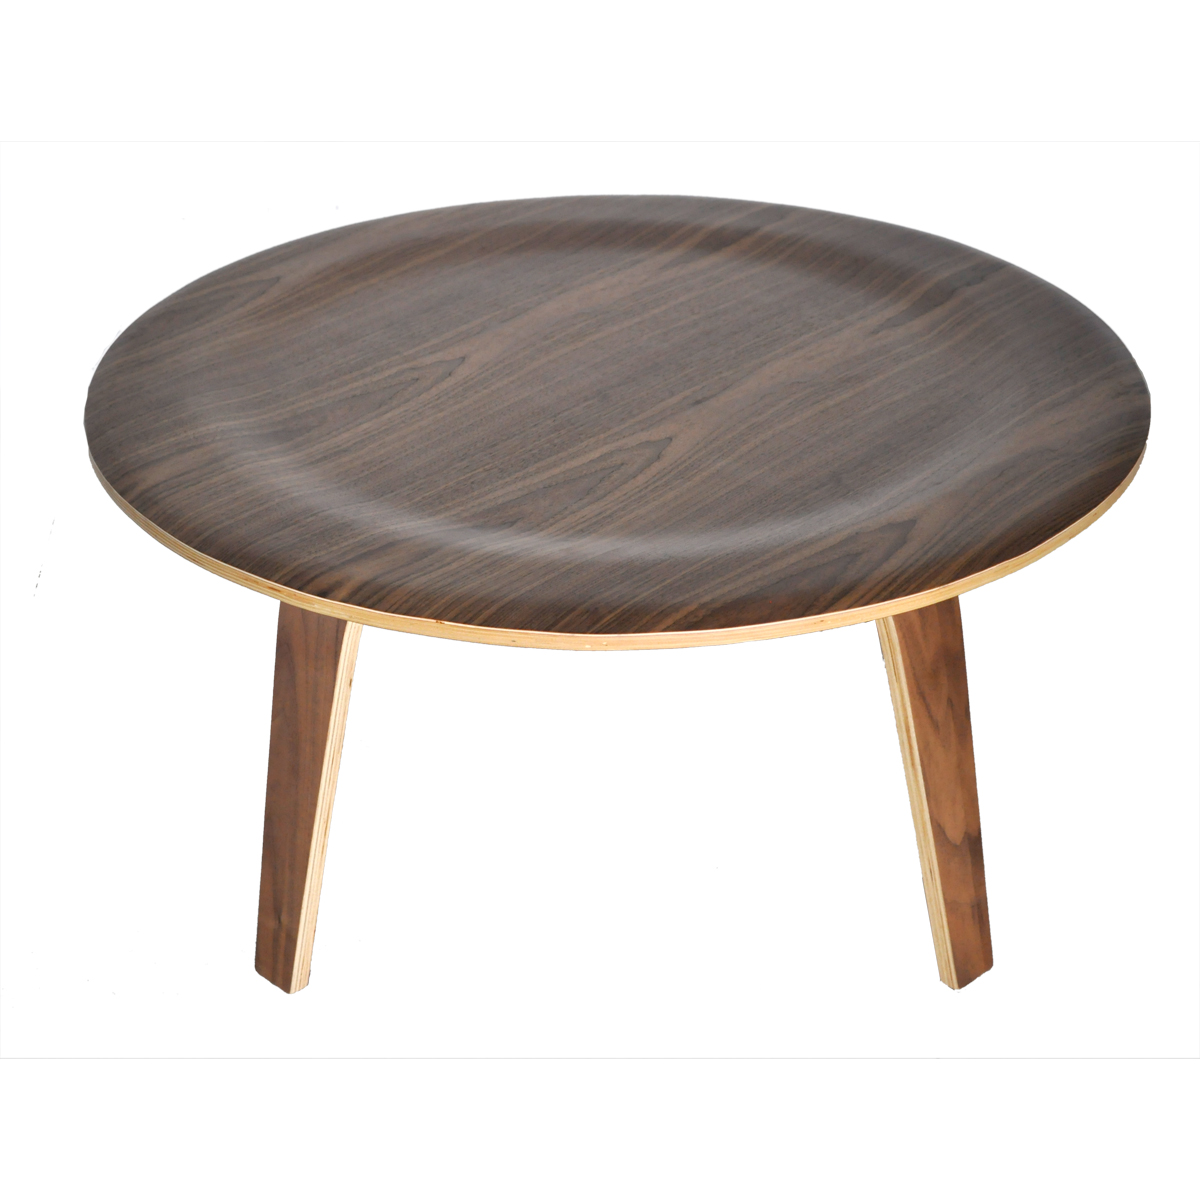 Image of: Decoration Eames Coffee Table